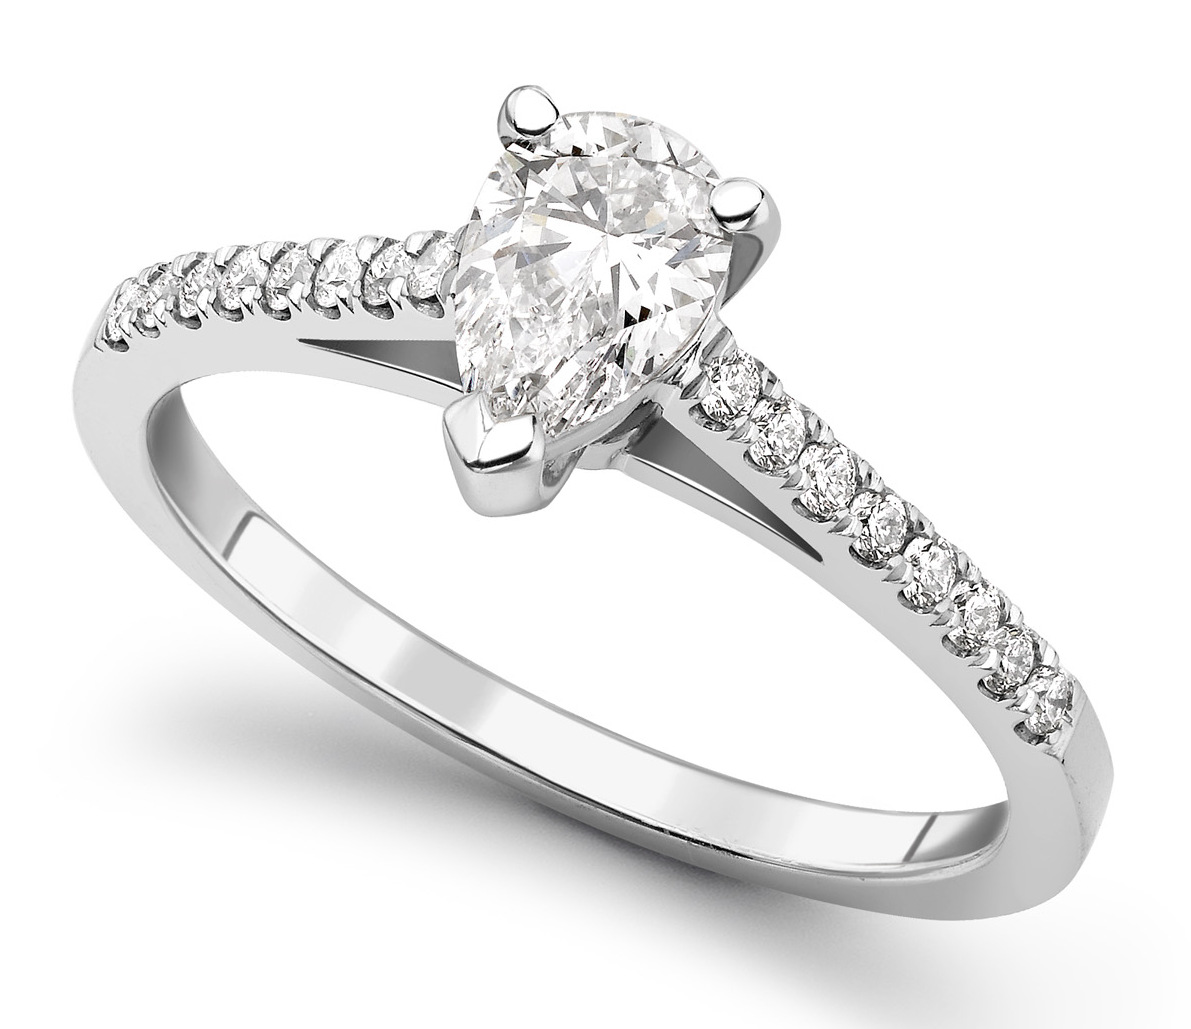 Pear Shape 3 Claw Platinum Diamond Engagement Ring CRC698PLT Main Image